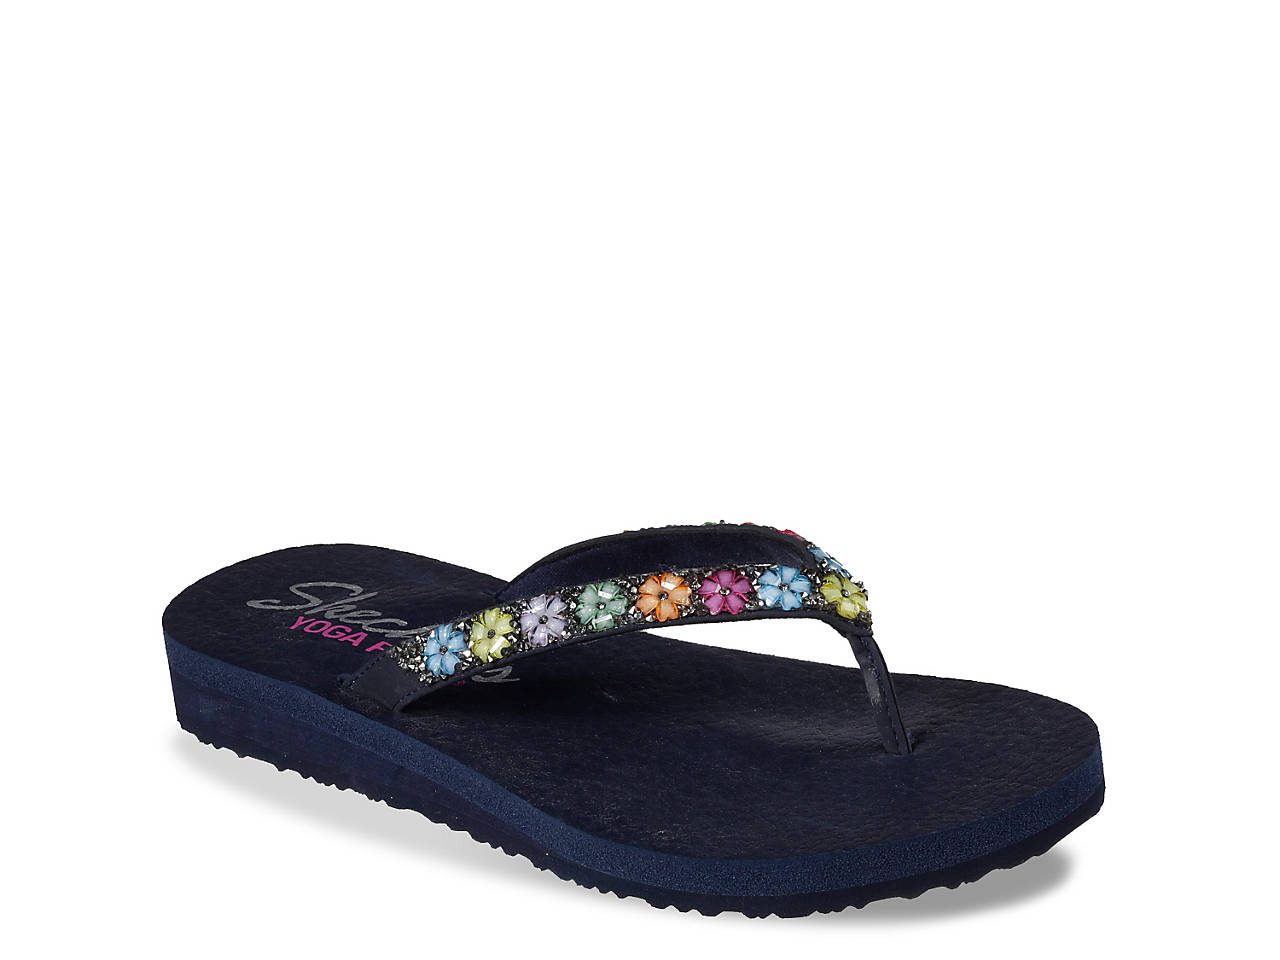 4a2017cd7 Skechers Daisy Delight Flip Flop Women s Shoes